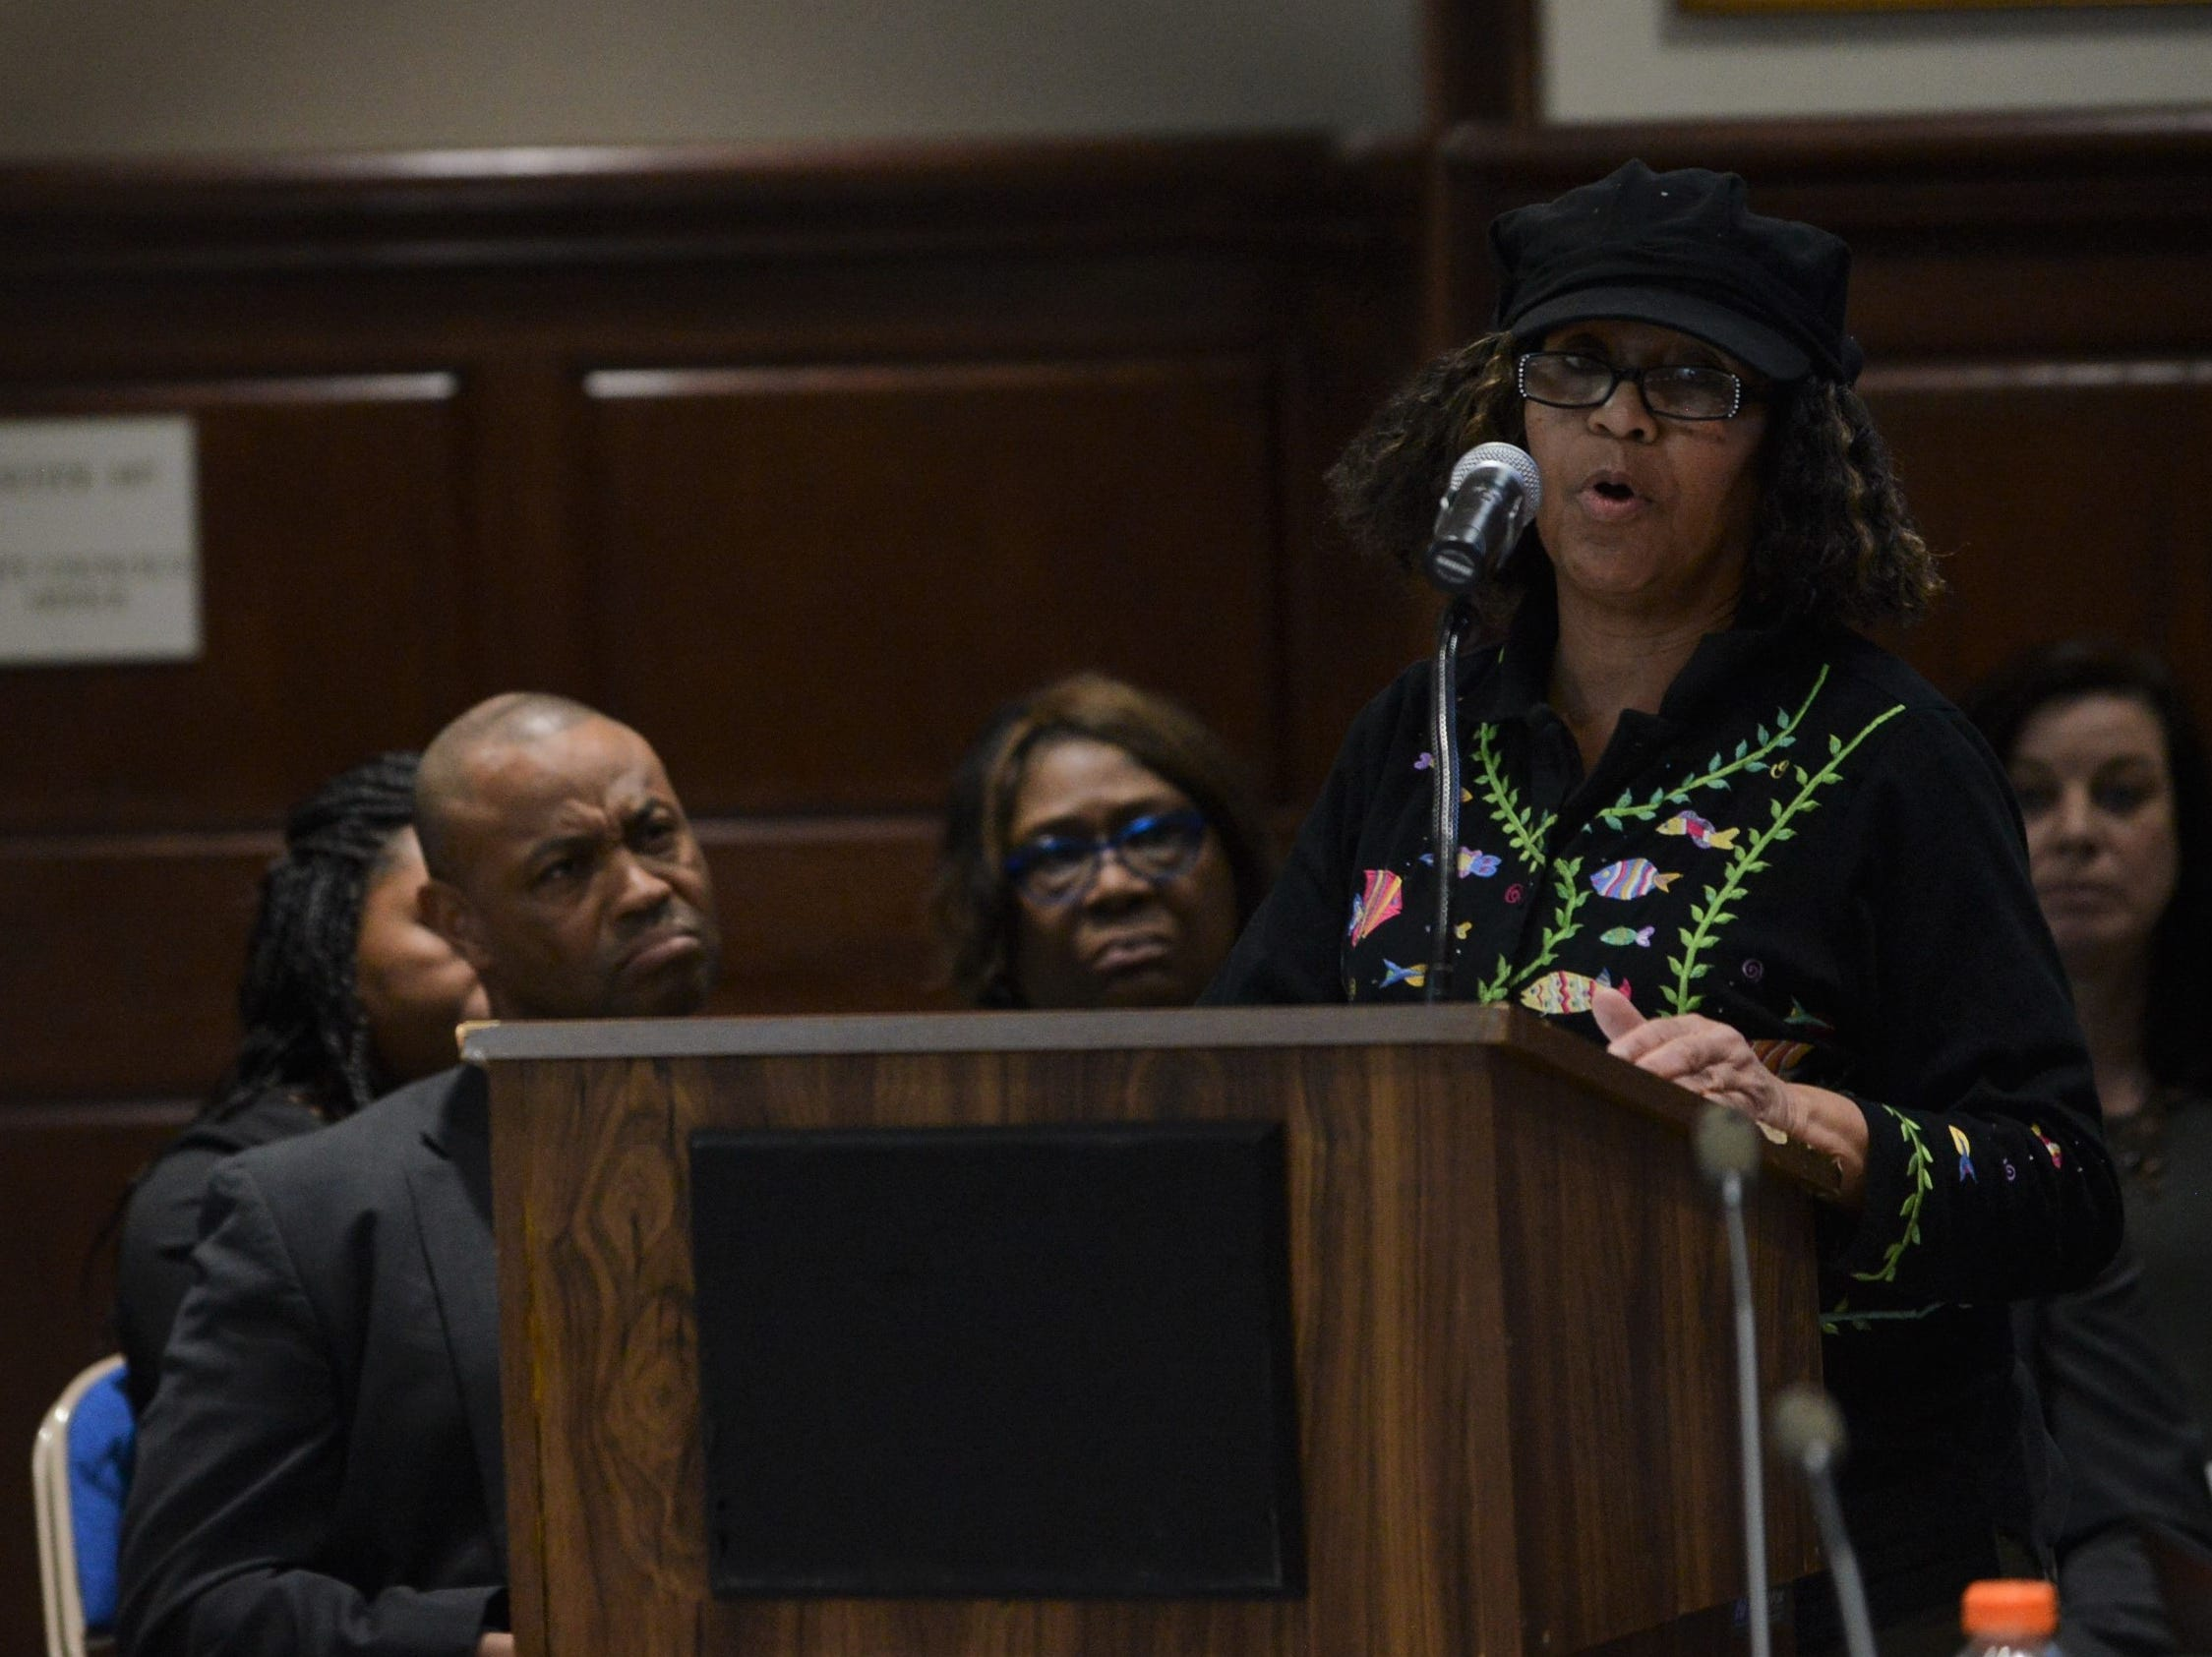 Sheila Godwin, a candidate for City Council District 3, calls for respect for board member Morris Merriweather during public comment at the JMC school board meeting at Jackson City Hall on Thursday night.